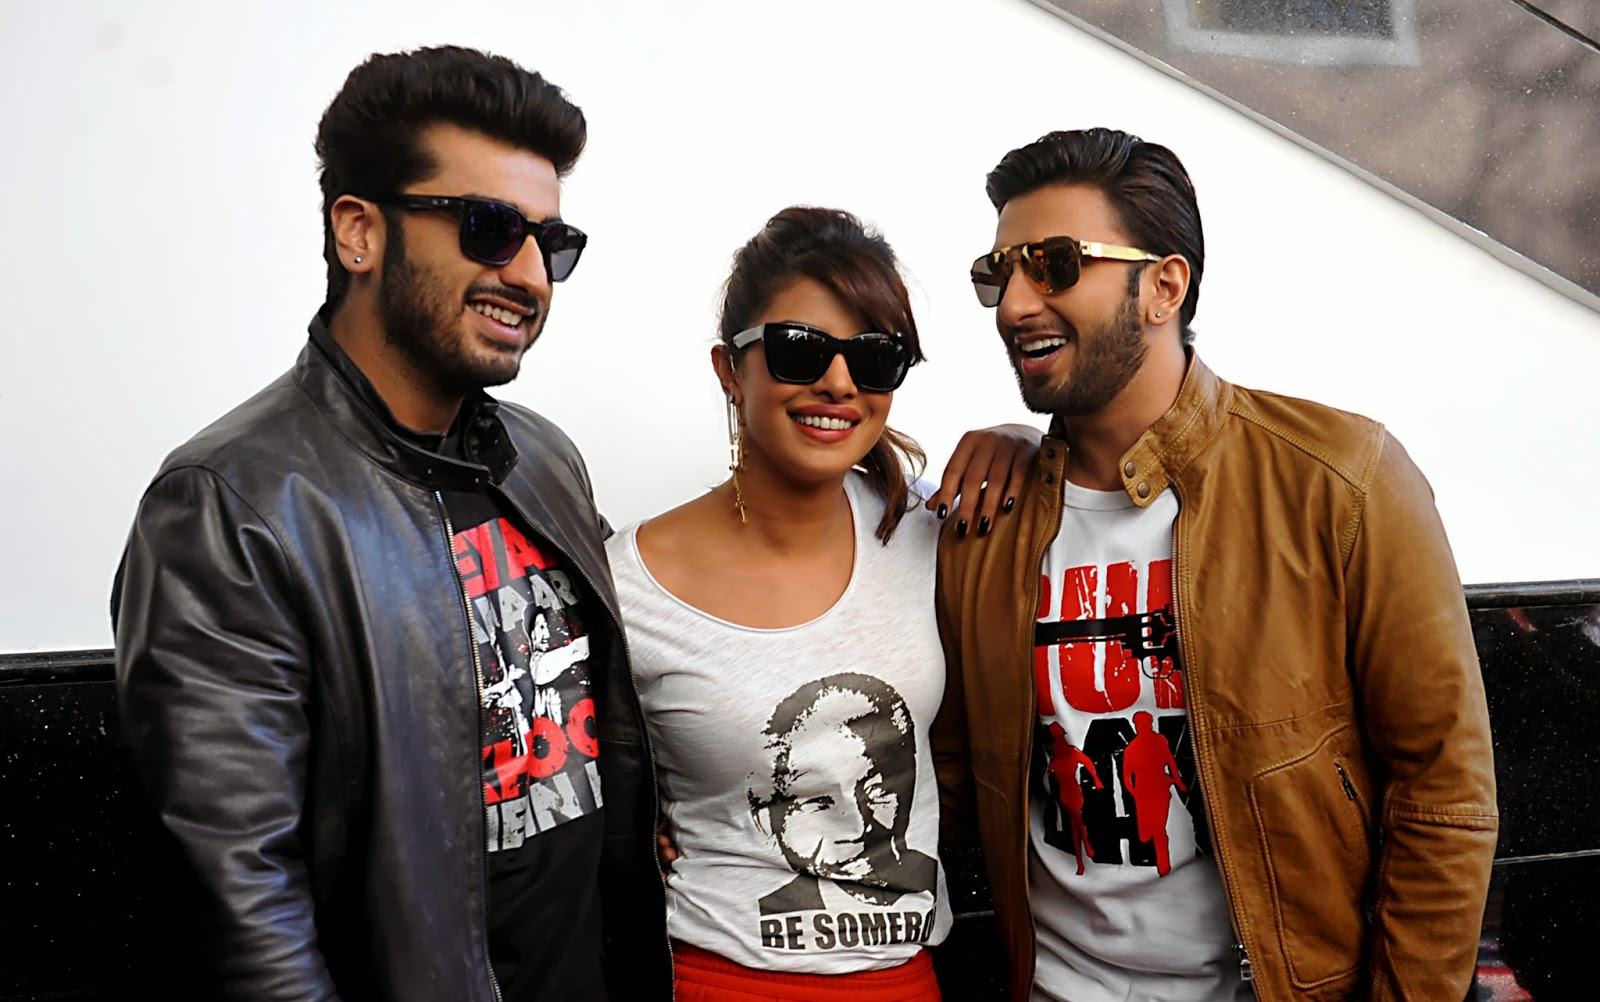 Aditya Chopra, Ali Abbas Zafar, Arjun Kapoor, Bollywood, Director, Forthcoming, Gunday, Hindi Film, India, Movie, Mumbai, Priyanka Chopra, Promotion, Ranveer Singh, Release, Showbiz, Worldwide,